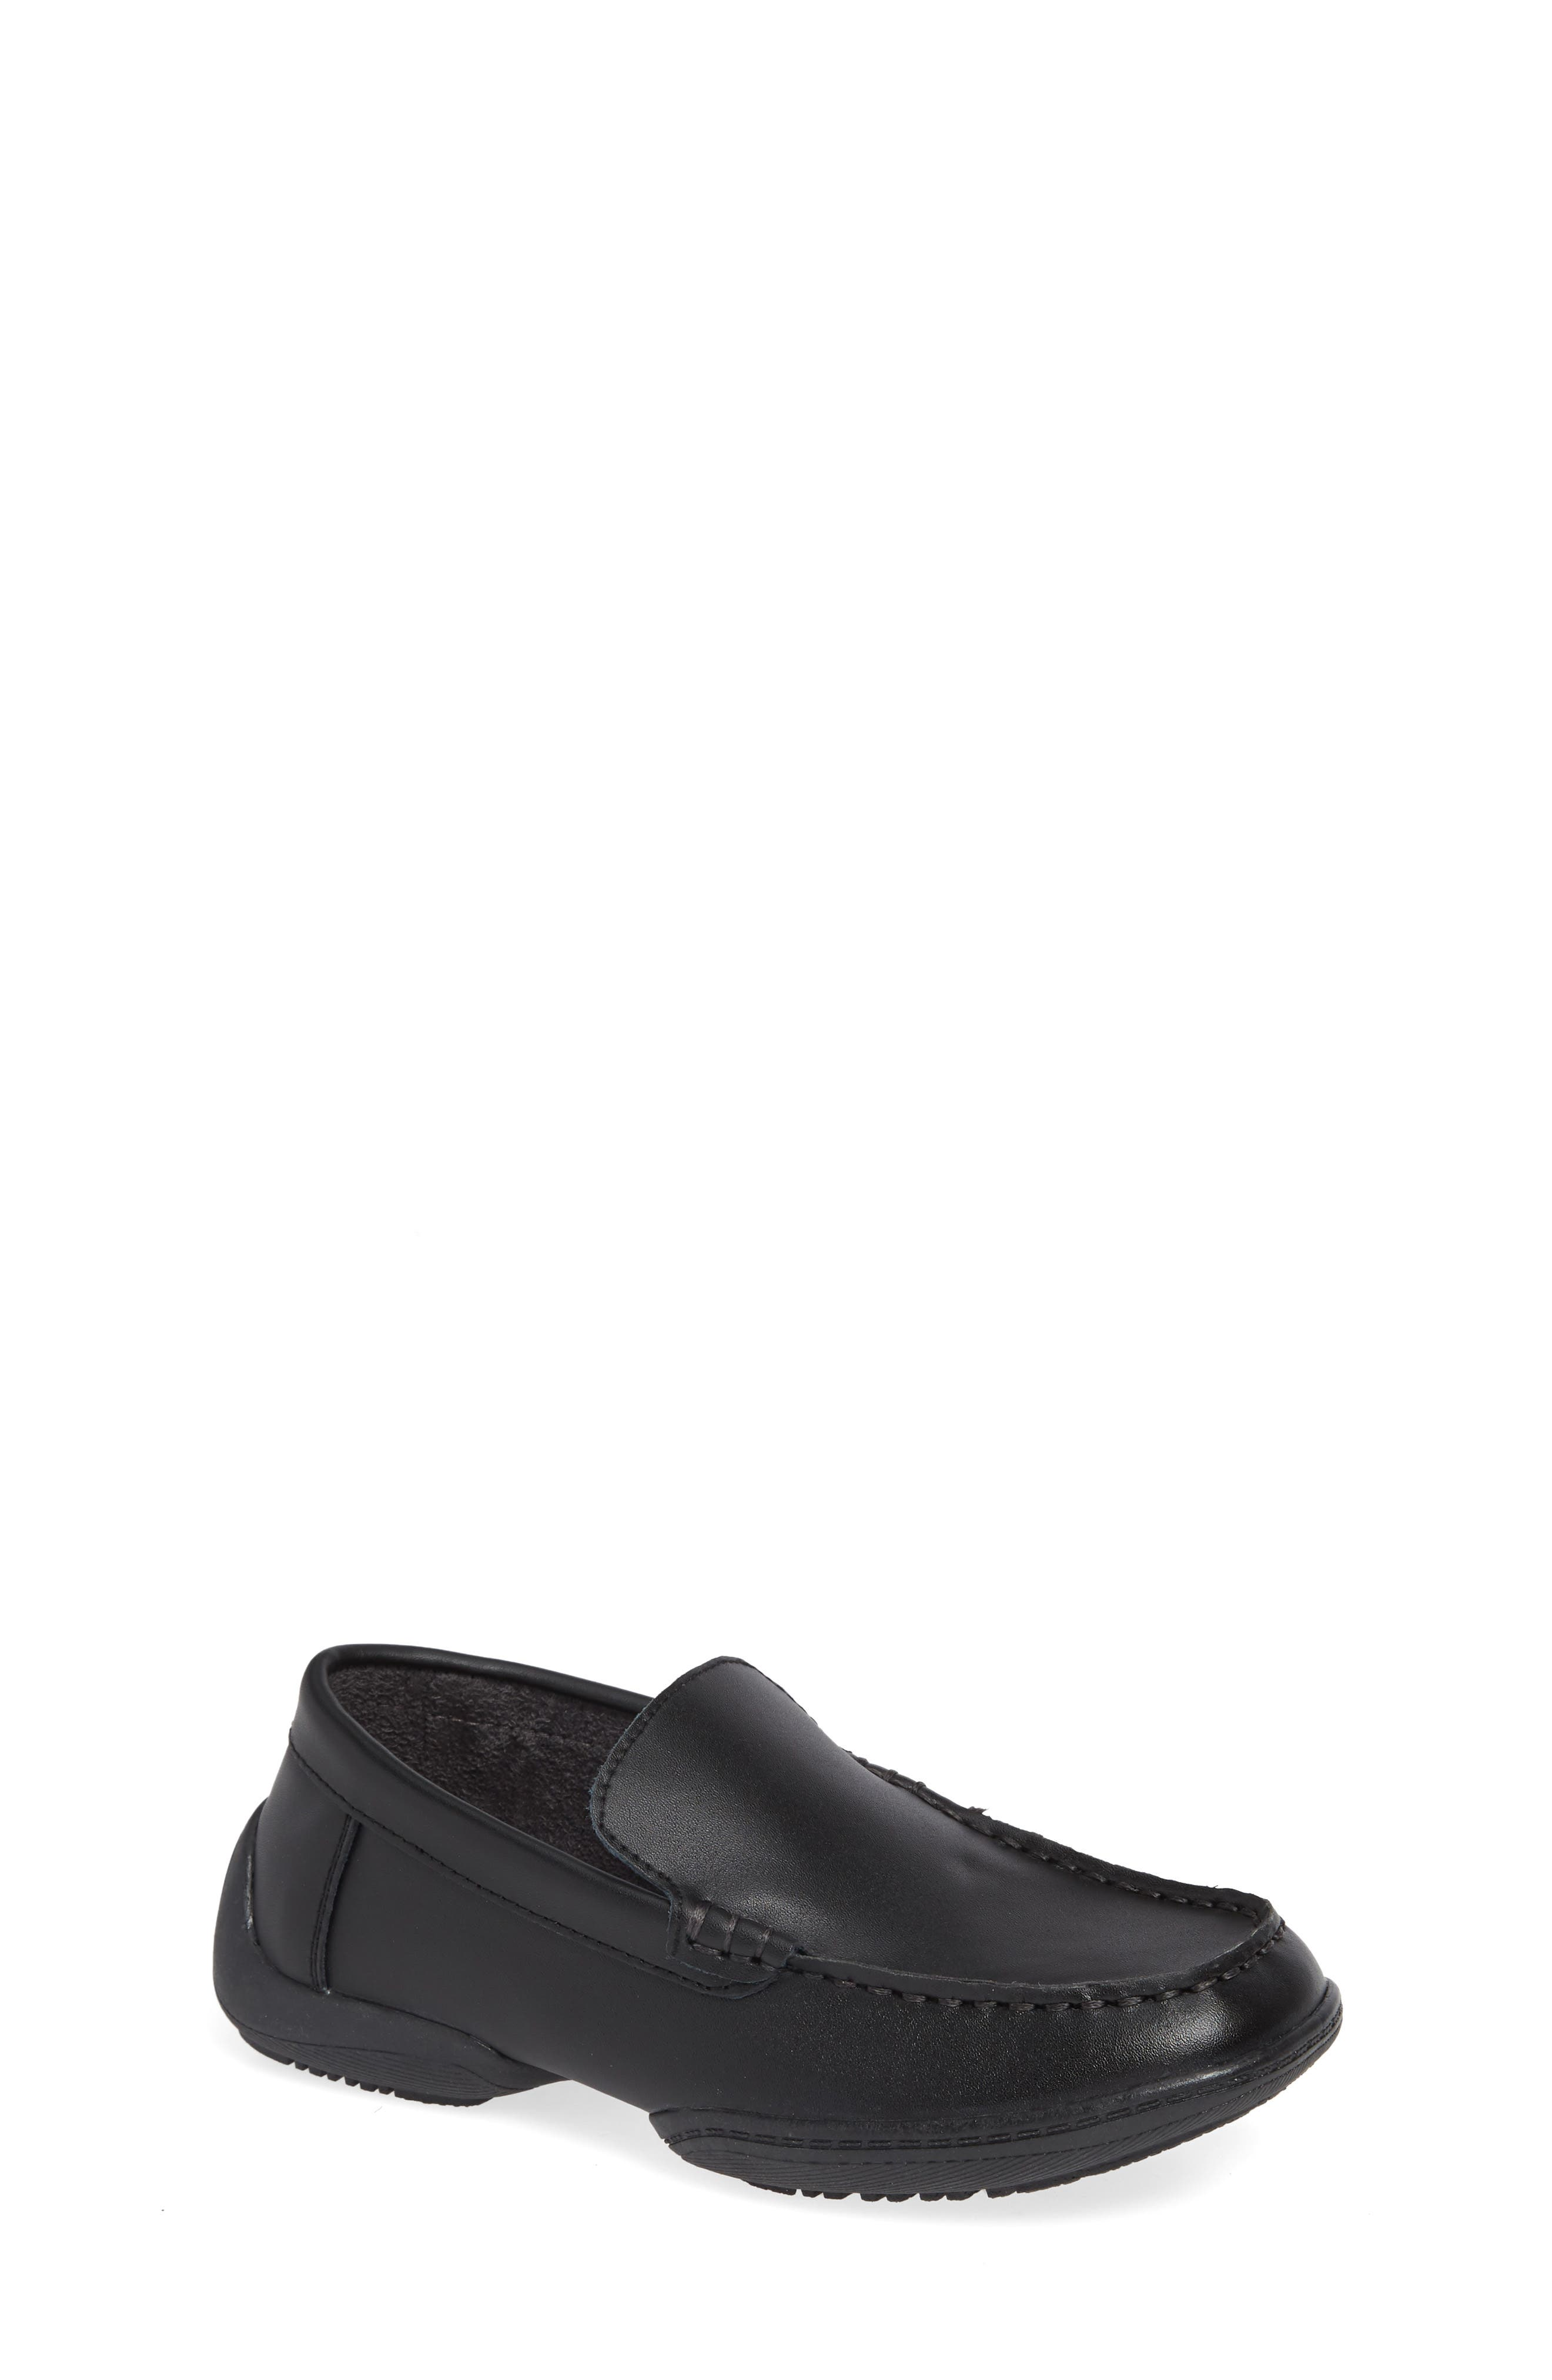 REACTION KENNETH COLE, Driving Dime Moccasin, Main thumbnail 1, color, DARK BLACK LEATHER